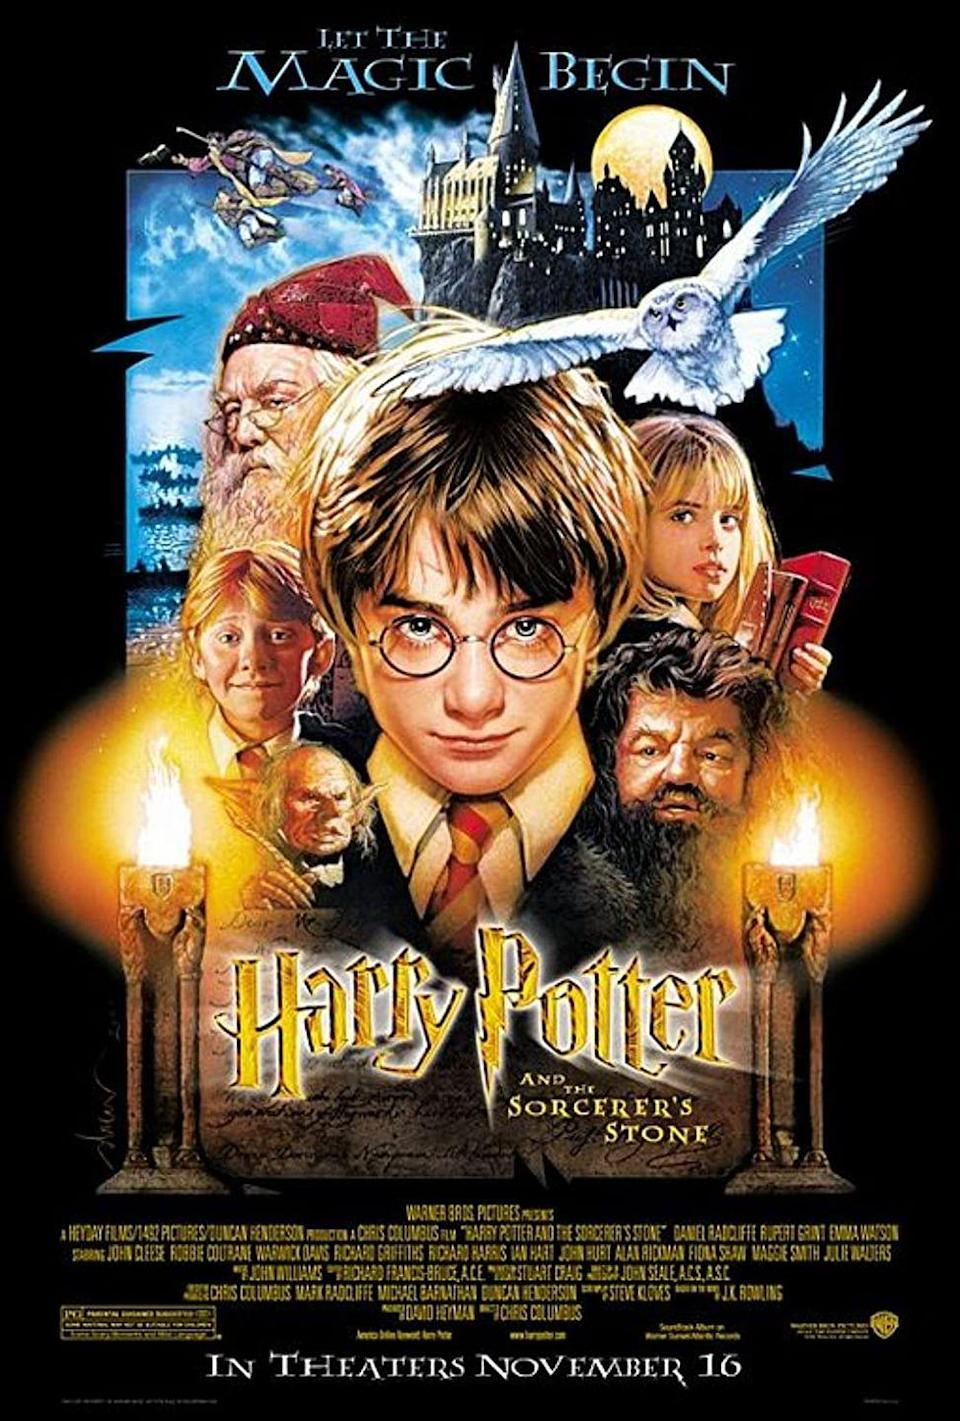 """<p><a class=""""link rapid-noclick-resp"""" href=""""https://go.redirectingat.com?id=74968X1596630&url=https%3A%2F%2Fwww.hbomax.com%2Fharrypotter20%3Fgclid%3DCjwKCAjw4qCKBhAVEiwAkTYsPHVBpXeMkJ8AOyiRWjDF-8yp5kjjJaIwZNWJqxscDRk-FNQCXBkO9BoCGb8QAvD_BwE%26gclsrc%3Daw.ds&sref=https%3A%2F%2Fwww.womansday.com%2Flife%2Fentertainment%2Fg37644376%2Ffall-movies%2F"""" rel=""""nofollow noopener"""" target=""""_blank"""" data-ylk=""""slk:STREAM NOW"""">STREAM NOW</a></p><p>The <em>Harry Potter </em>films have that magical spookiness that just goes hand-in-hand with Halloween, making all of them fun to watch in the colder months. Start your eight-film marathon today.</p>"""